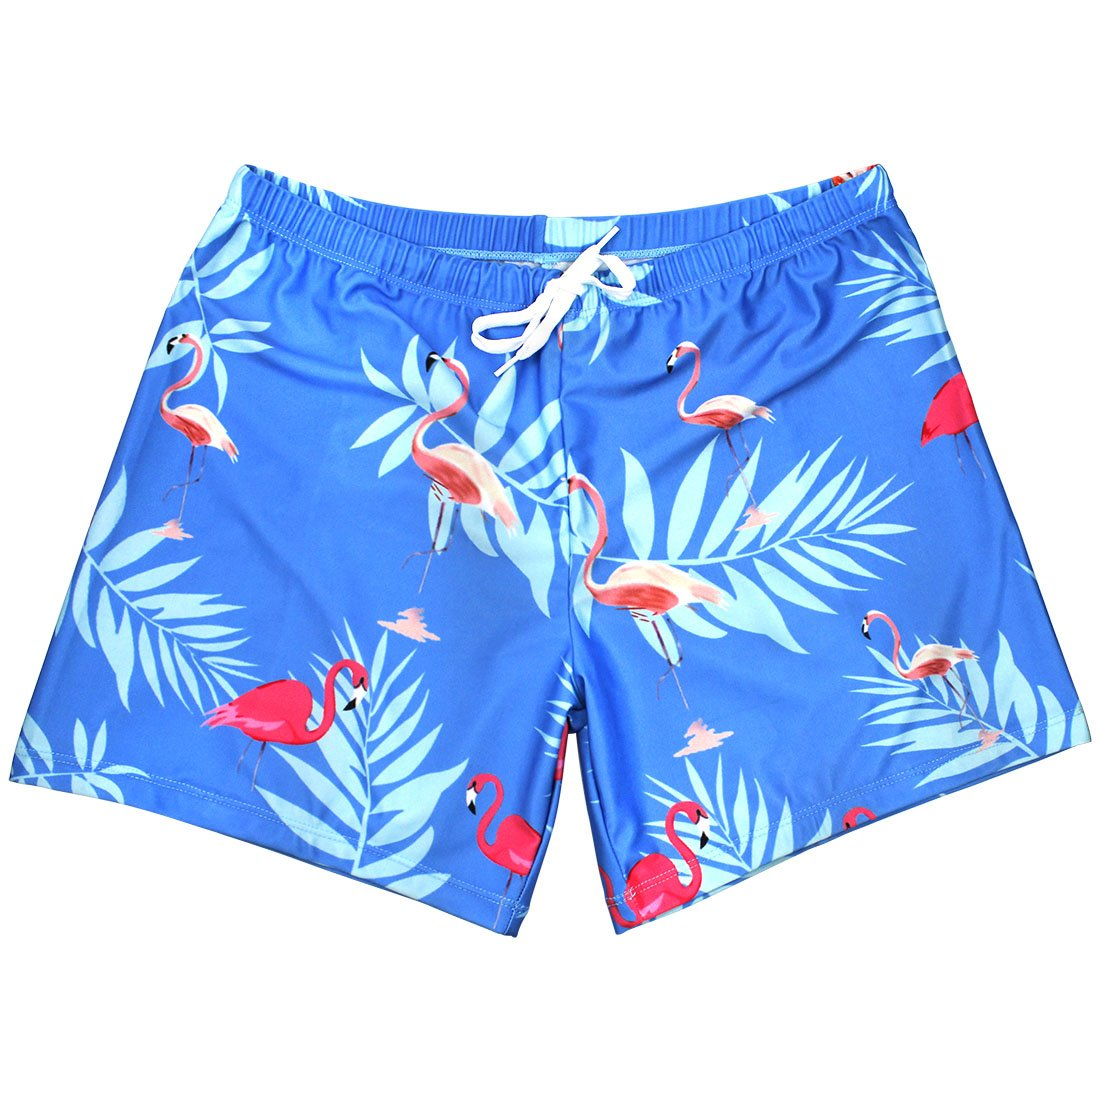 PickUrStyle Men and Boys Slim Fit Quick Dry Fashion Beach Short Swim Trunks with Mesh Lining by, Flamingos L